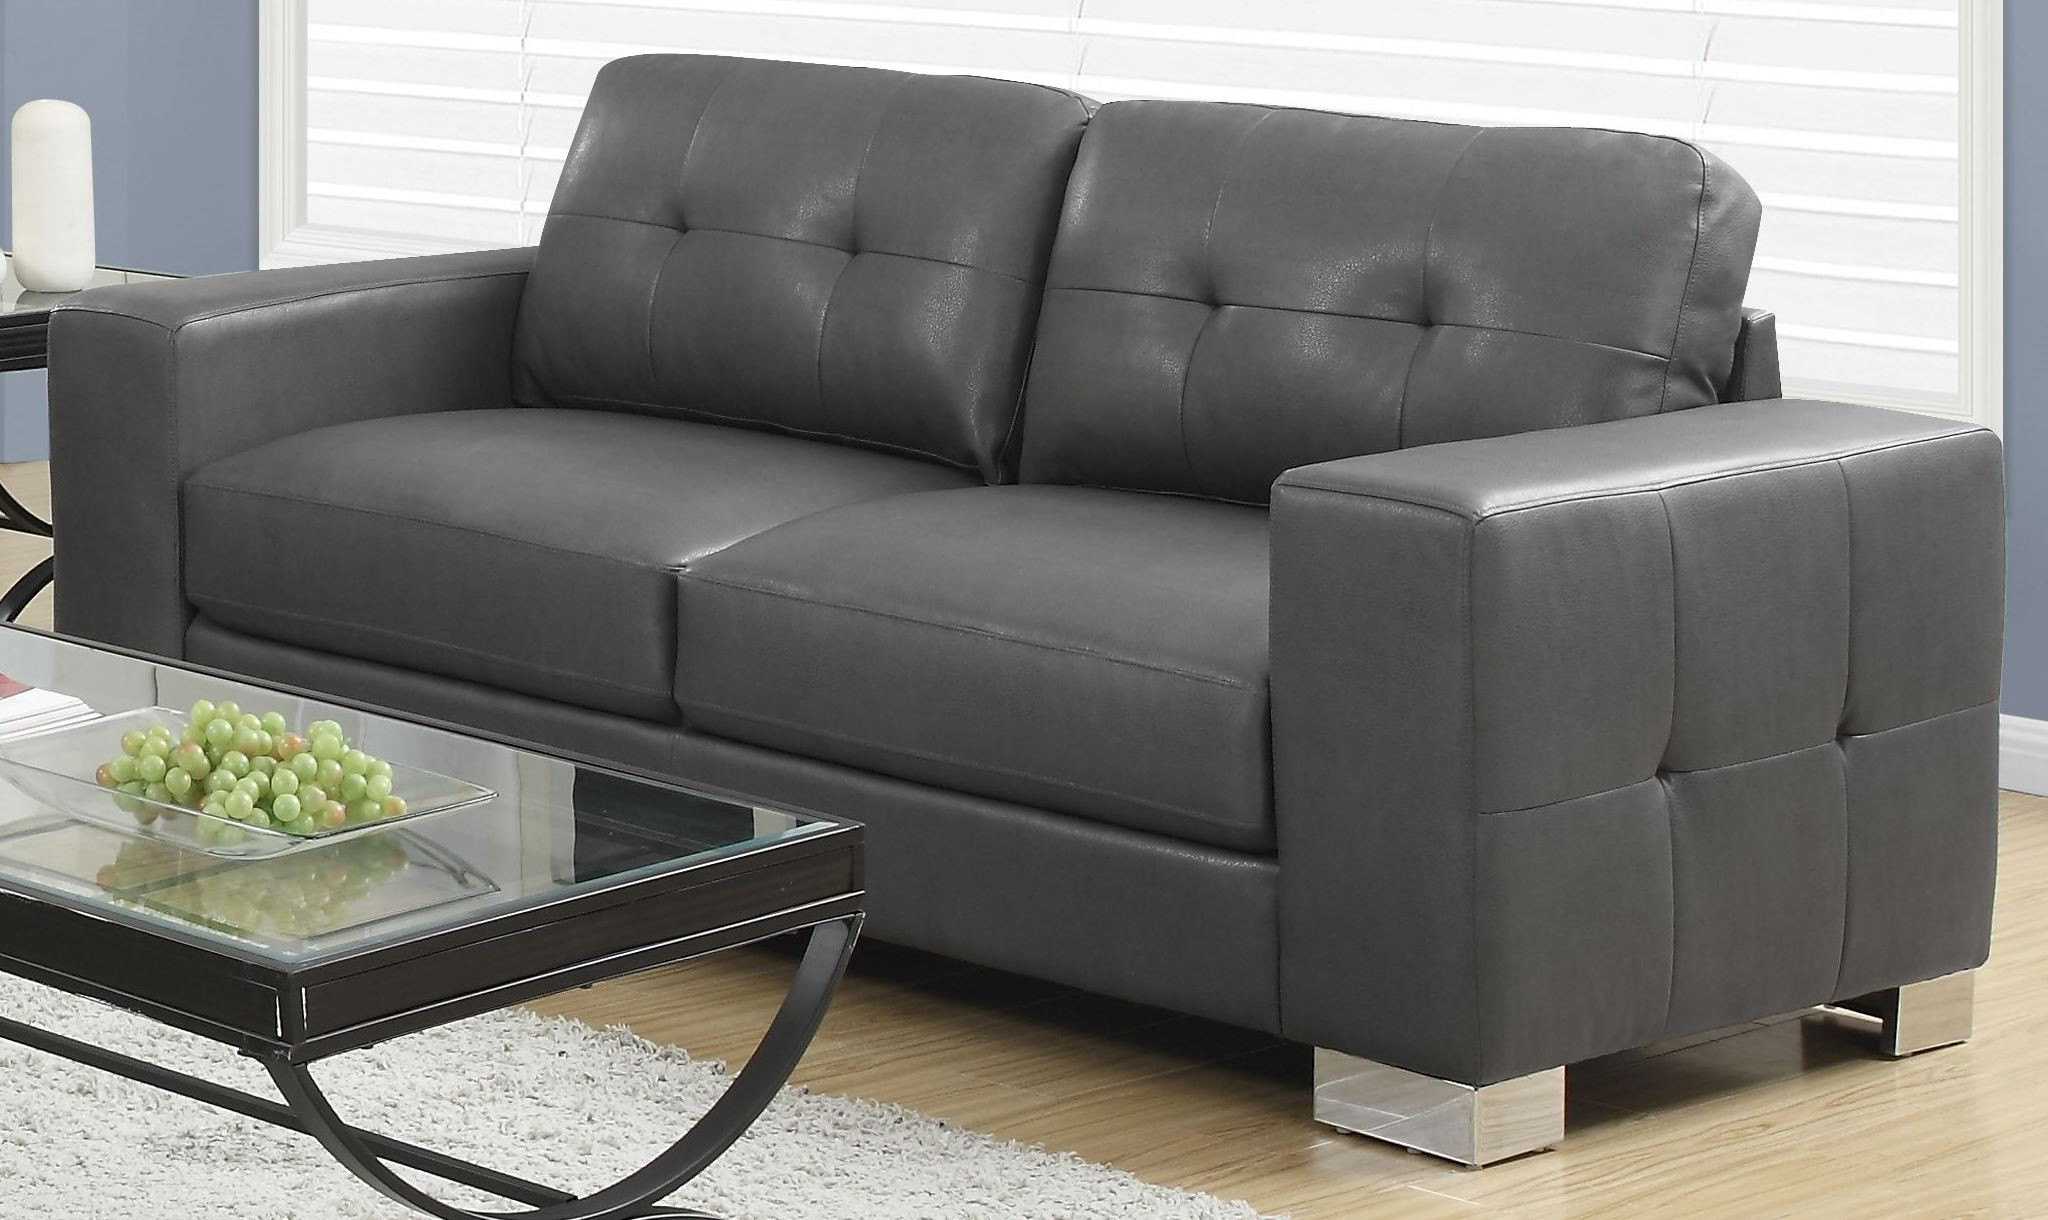 2018 Gray Sofas For 8223Gy Charcoal Gray Bonded Leather Sofa From Monarch (View 12 of 15)